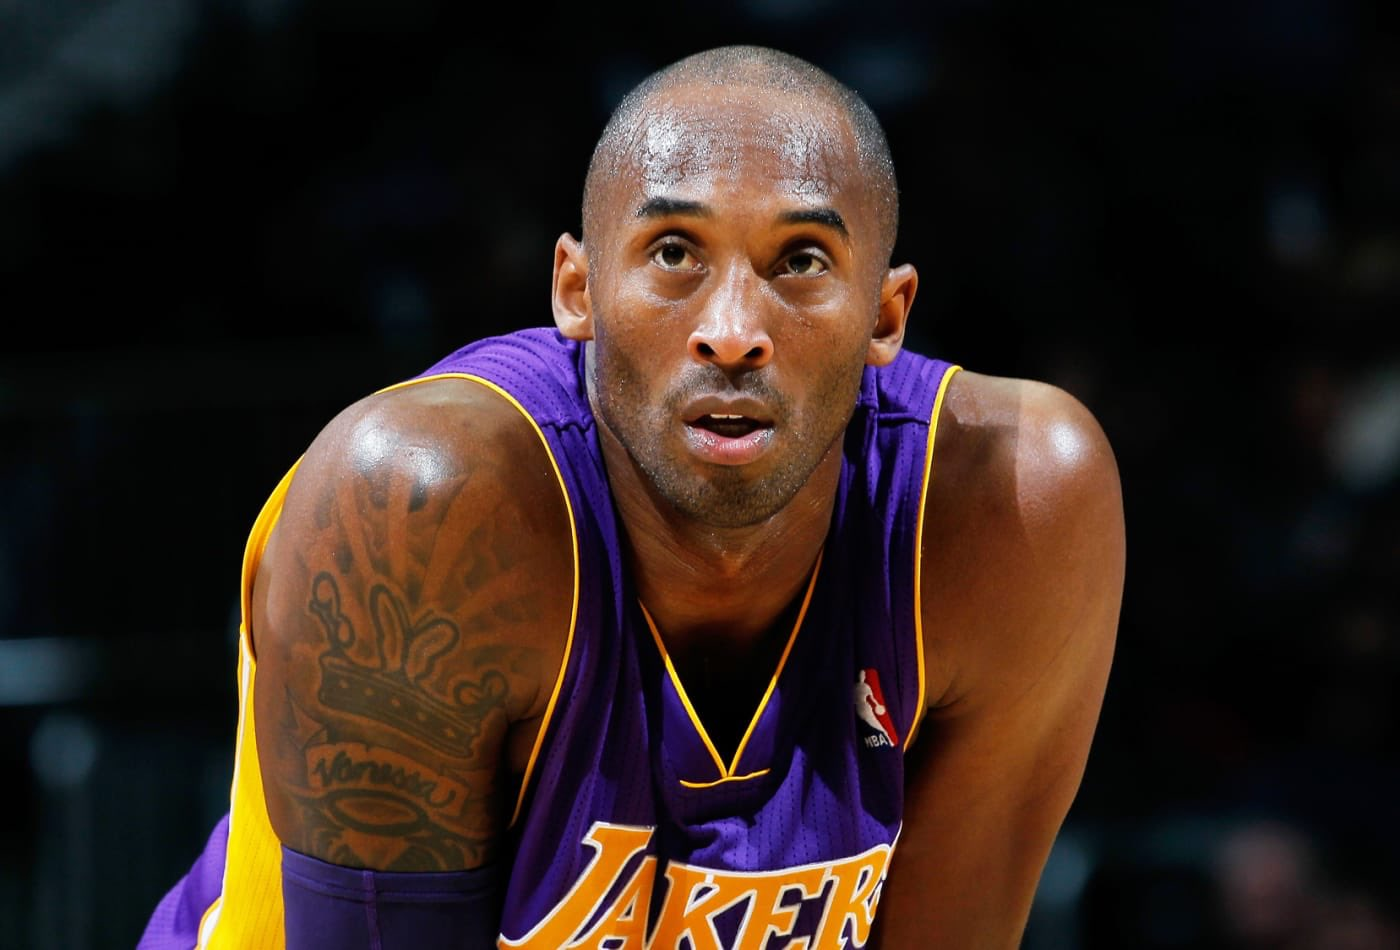 NBA Legend, Kobe Bryant's Death